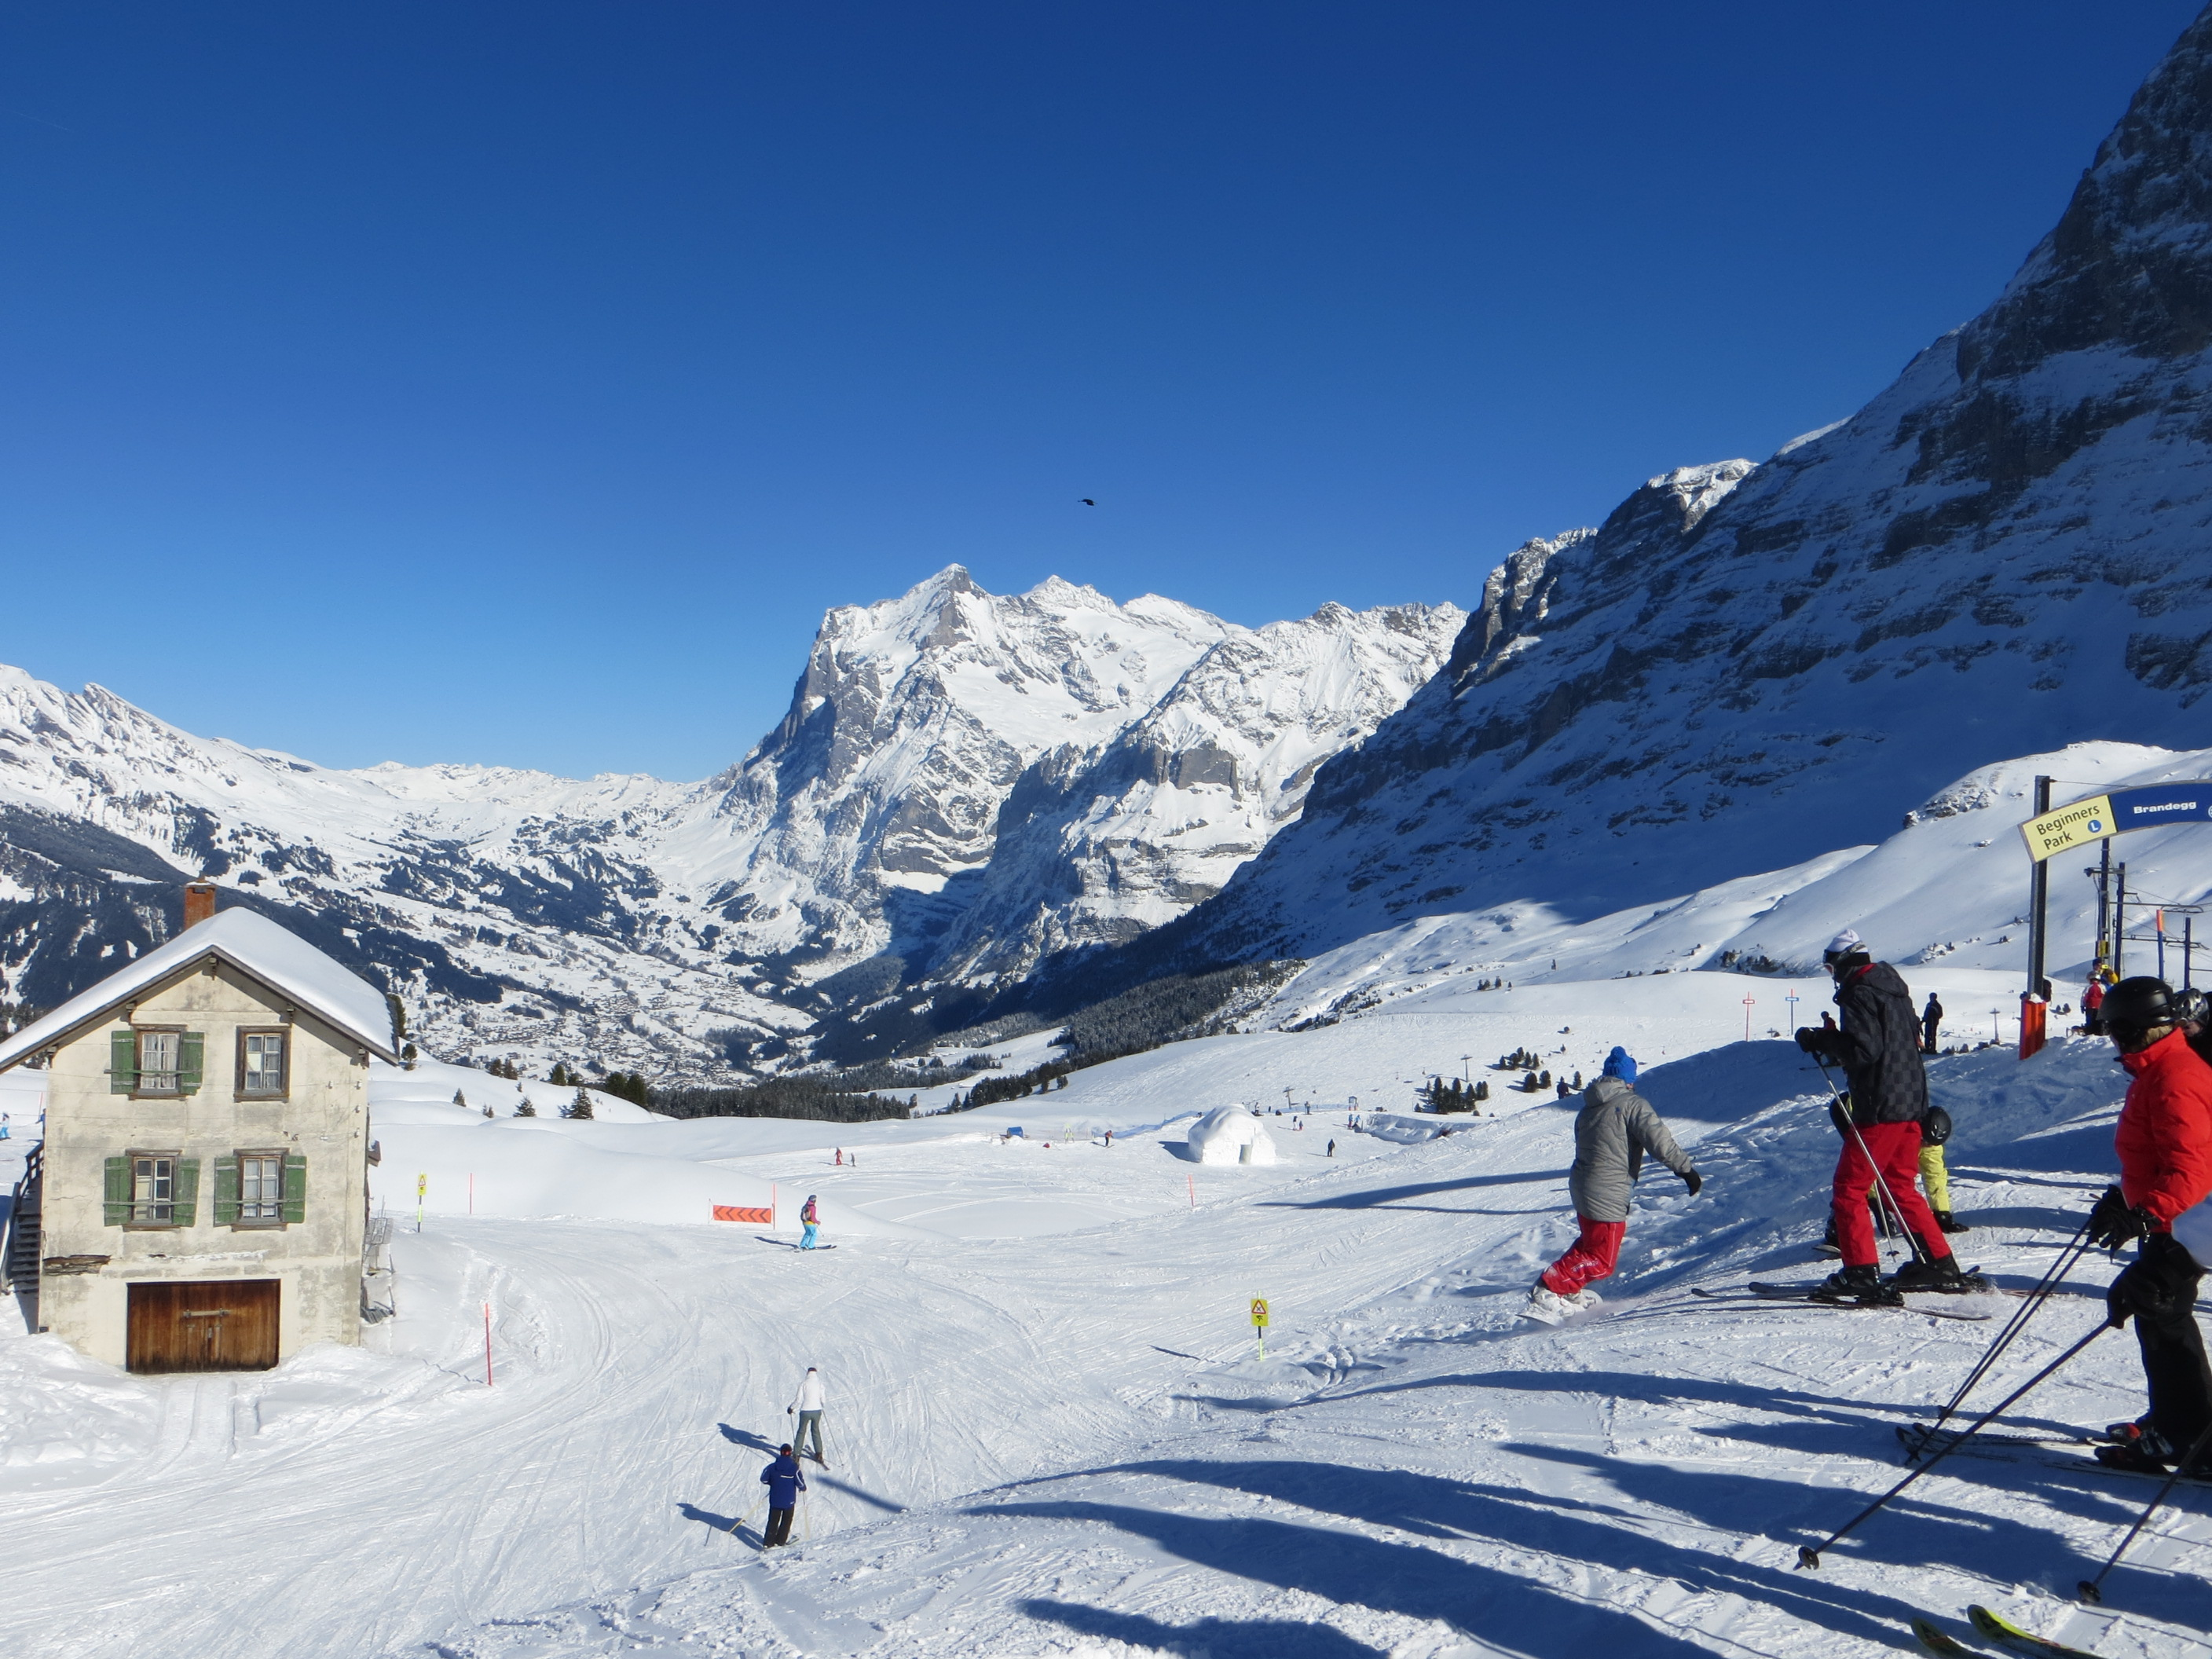 Alpine ski resorts plagued by lack of snow - Kleine Sheidegg Feb 2014